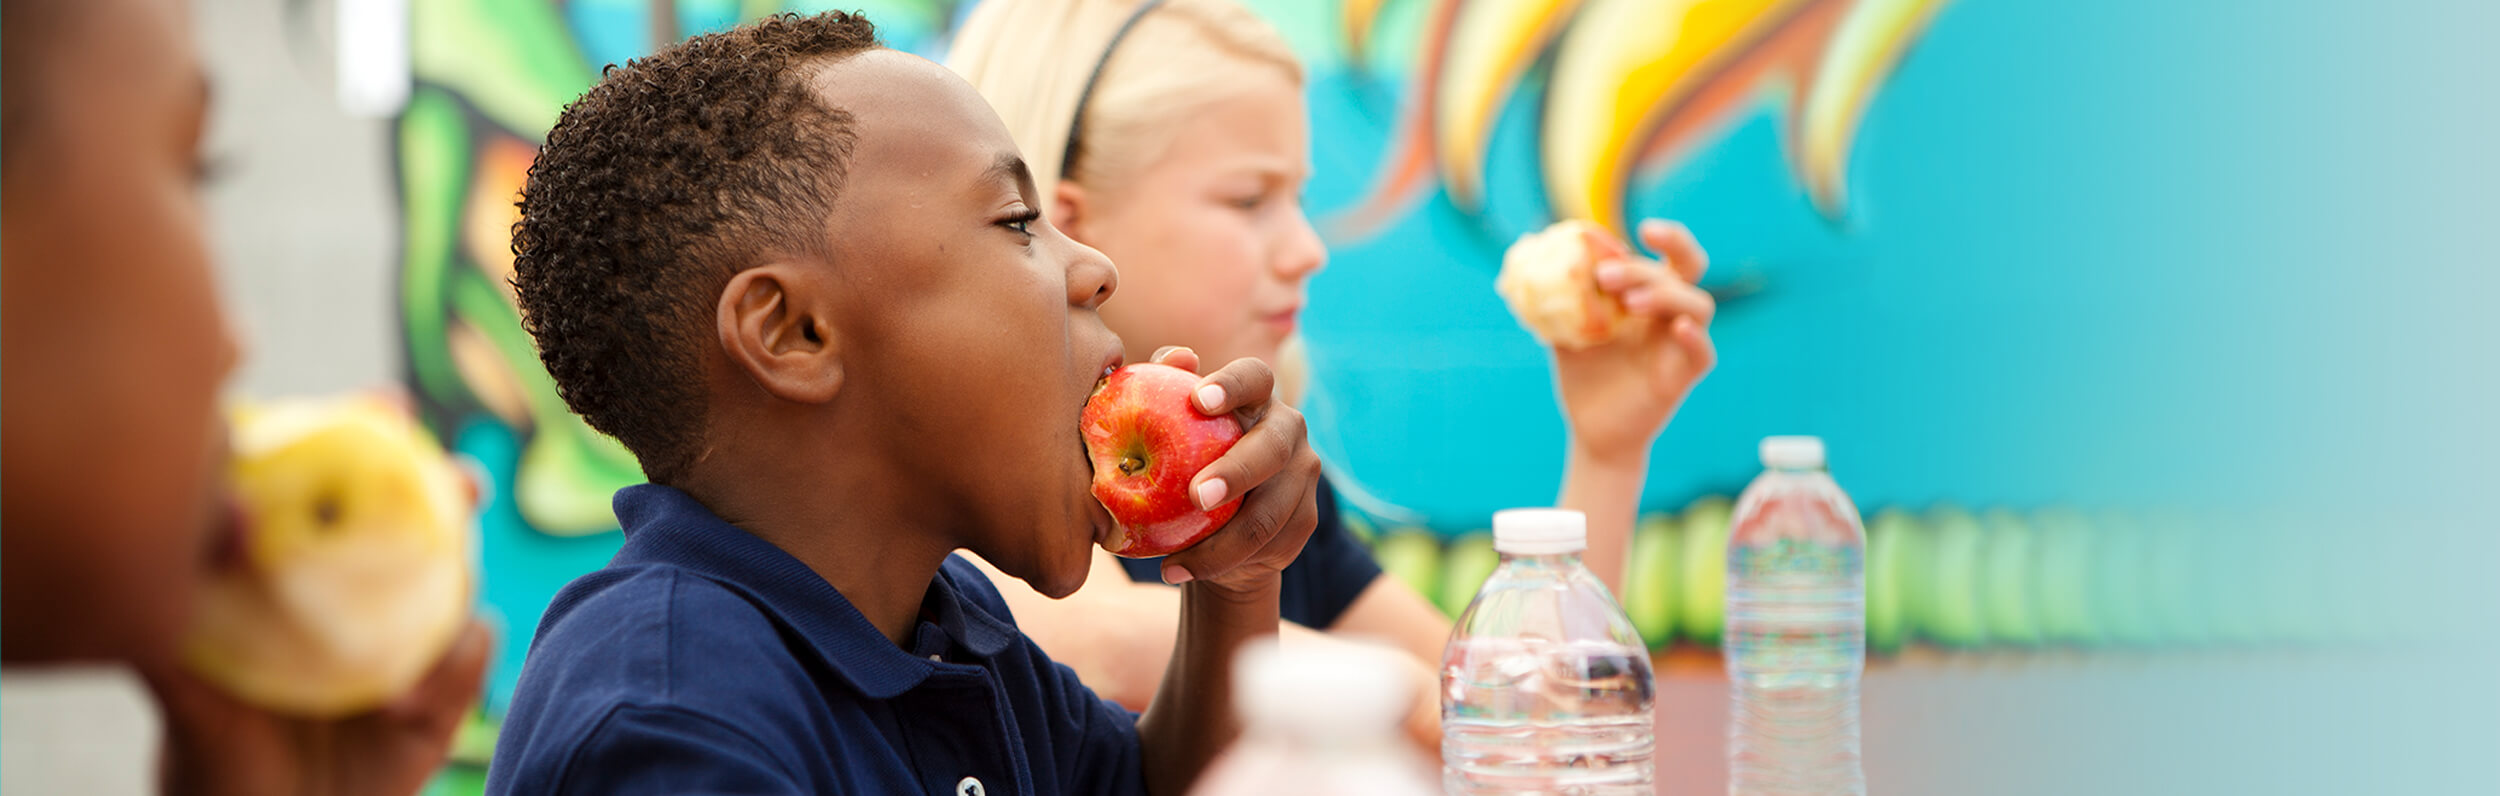 food program for daycare - children eating apples and drinking water - Novick Childcare